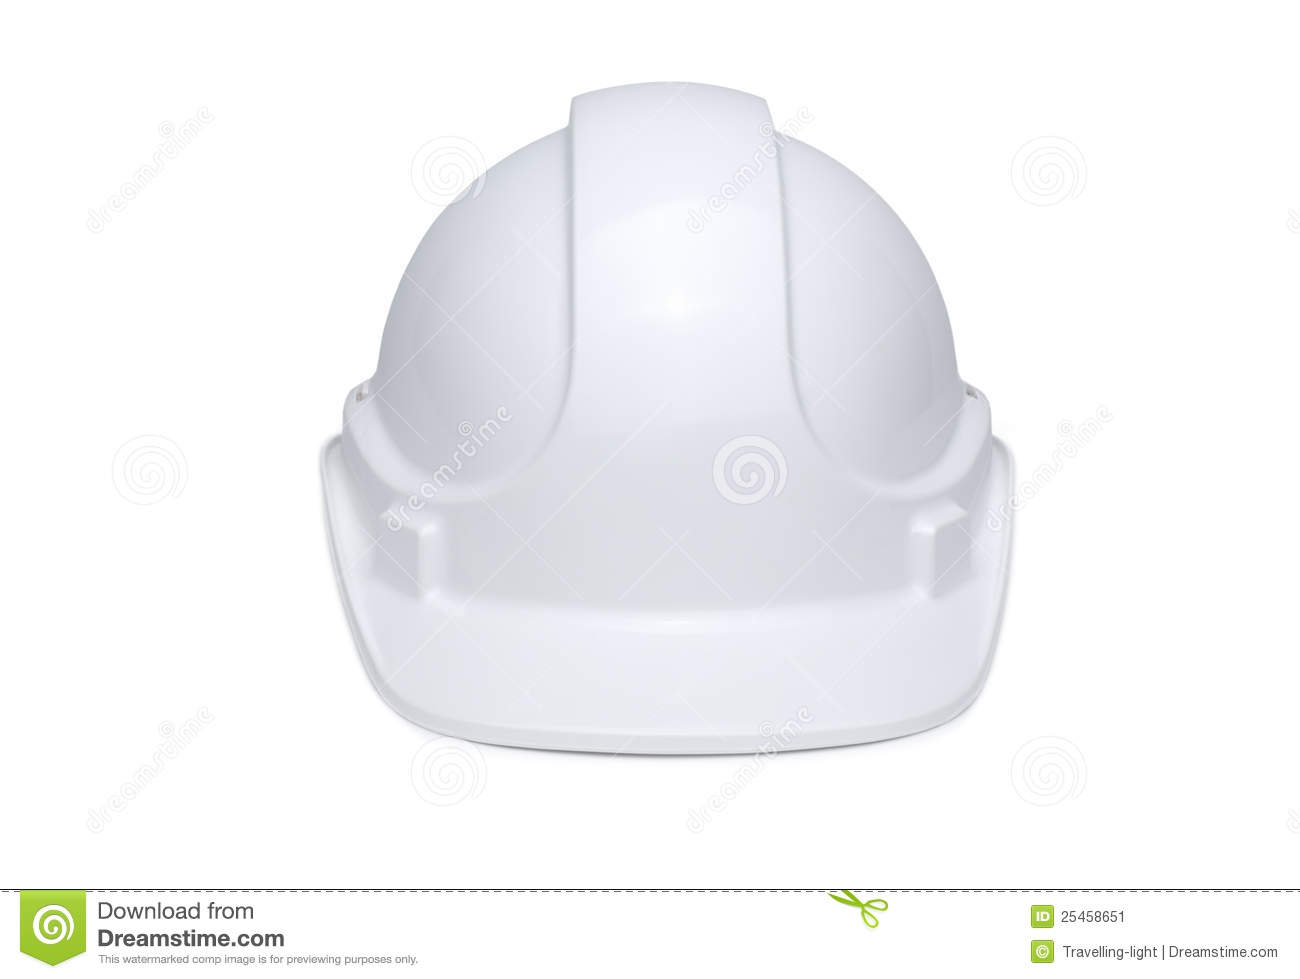 White hard hat isolated on white background with soft shadow under ...